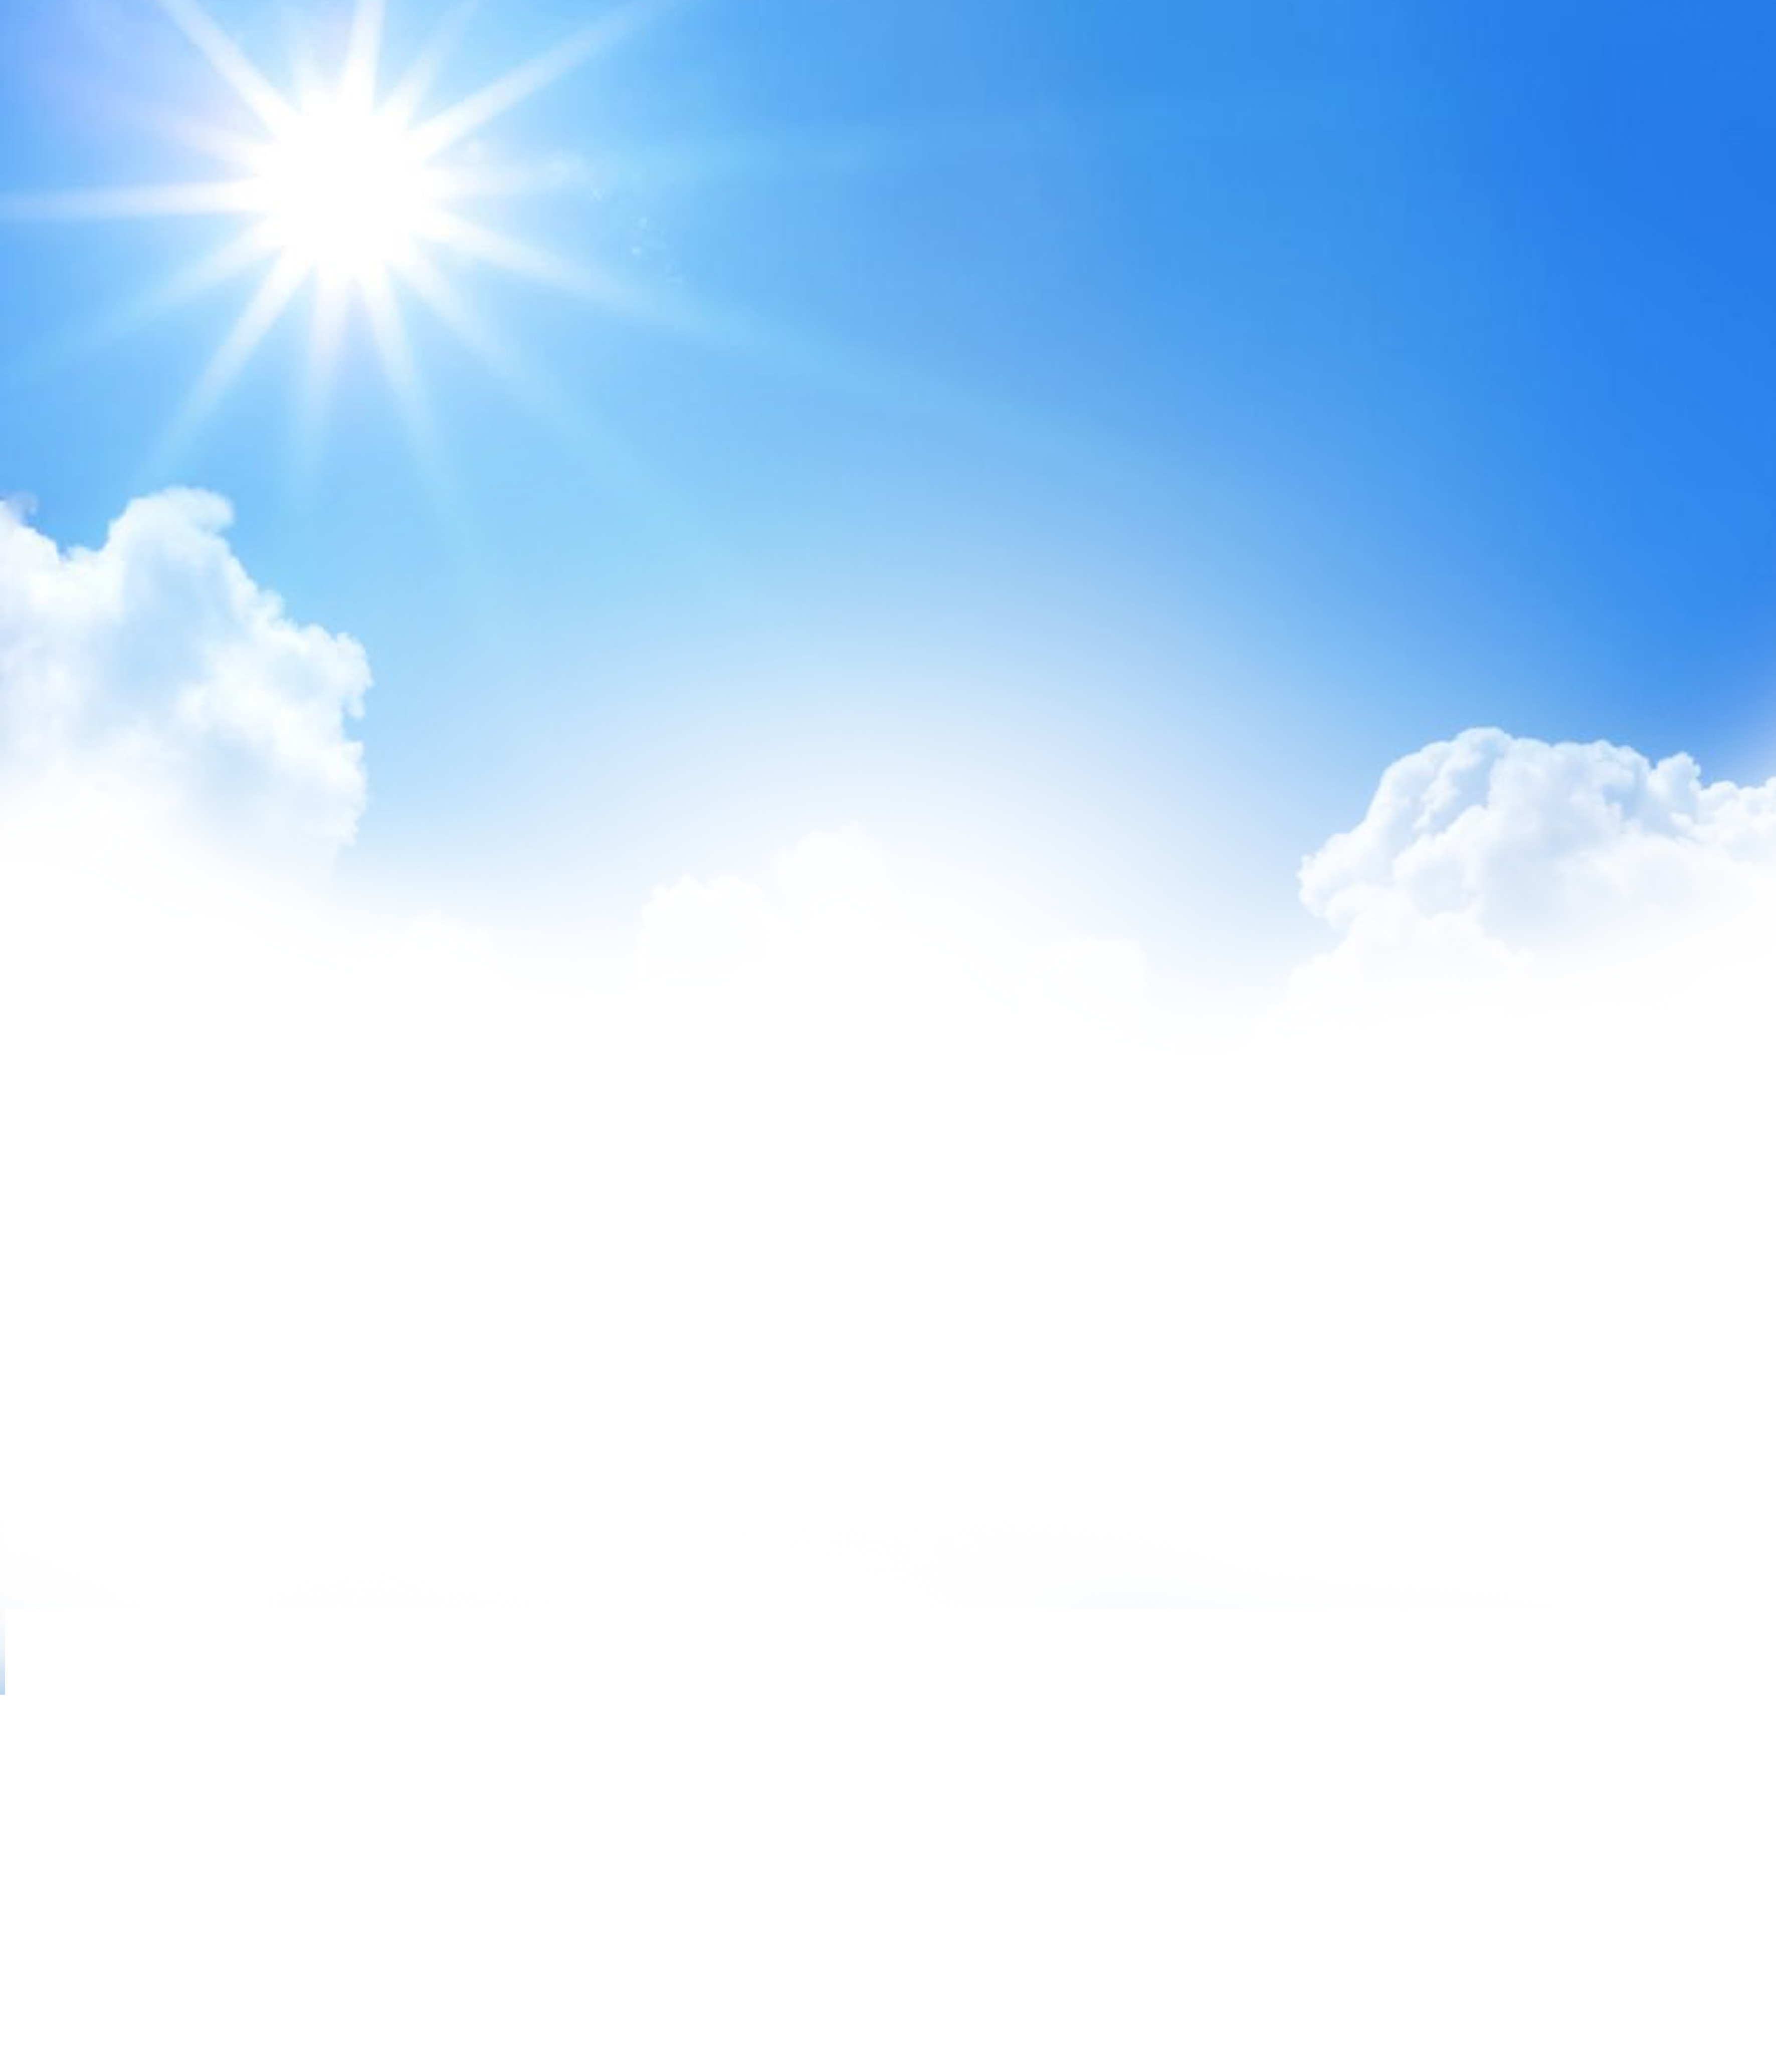 Cloudy Sky Background Png & Free Cloudy Sky Background.png